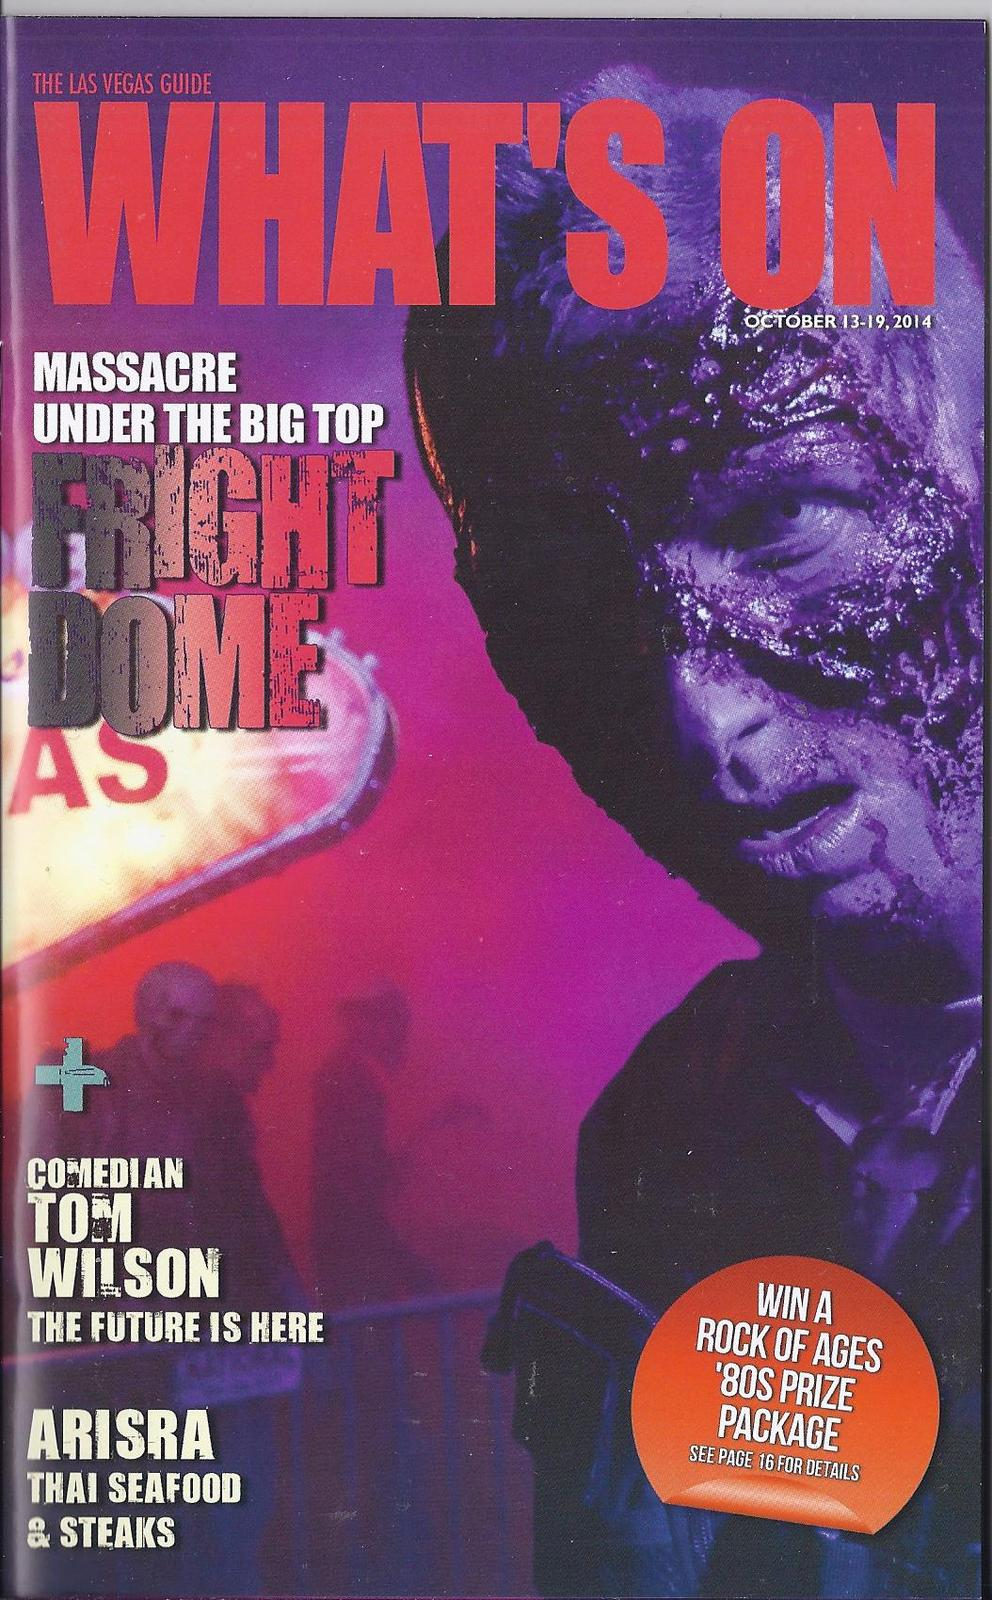 fright dome at circus circus hotel whats on las vegas magazine oct 2014 magazine back issues. Black Bedroom Furniture Sets. Home Design Ideas